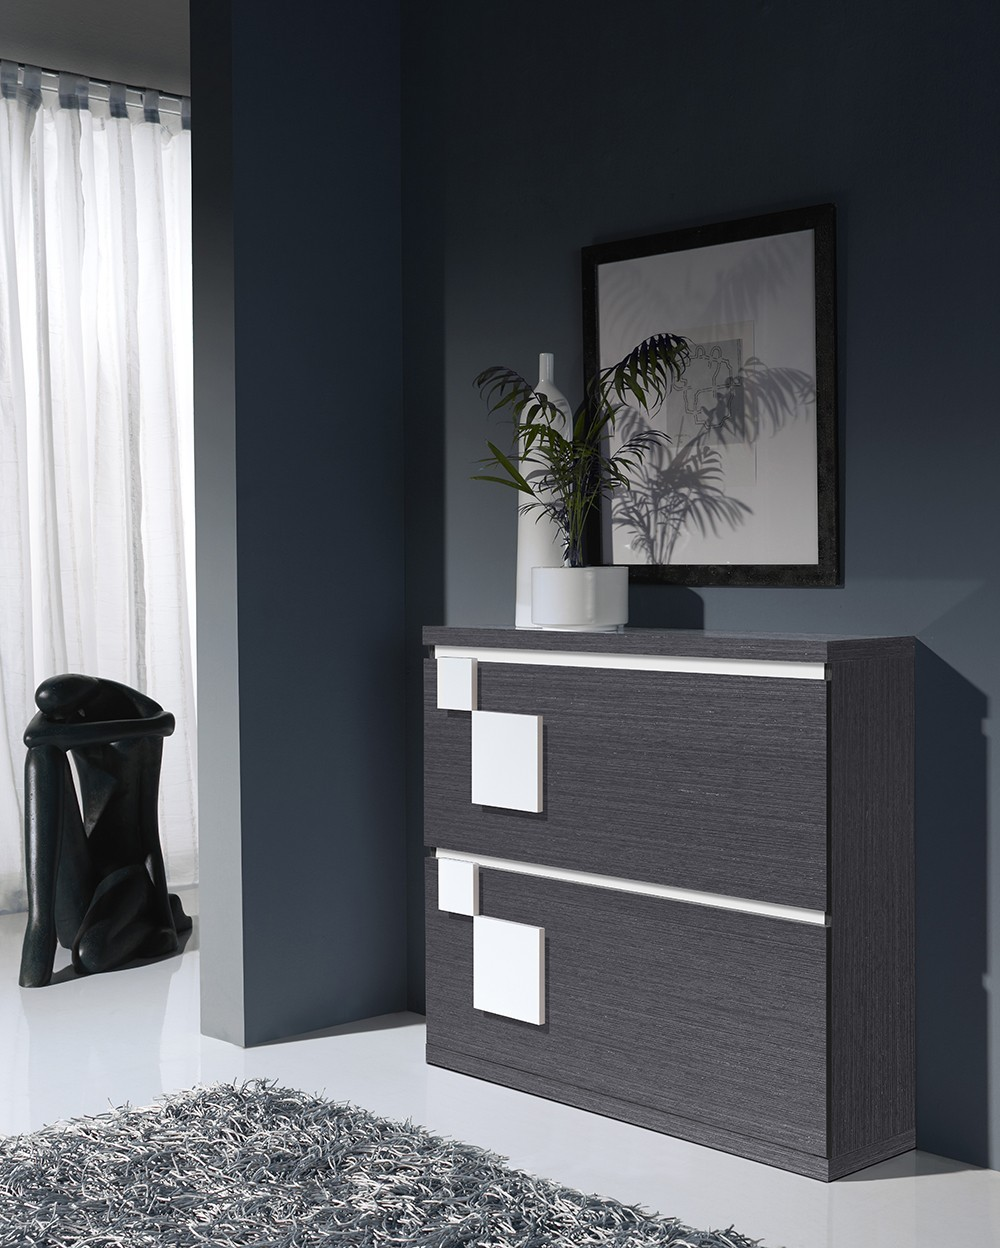 meuble a chaussures contemporain toledo zd1 mac mod. Black Bedroom Furniture Sets. Home Design Ideas